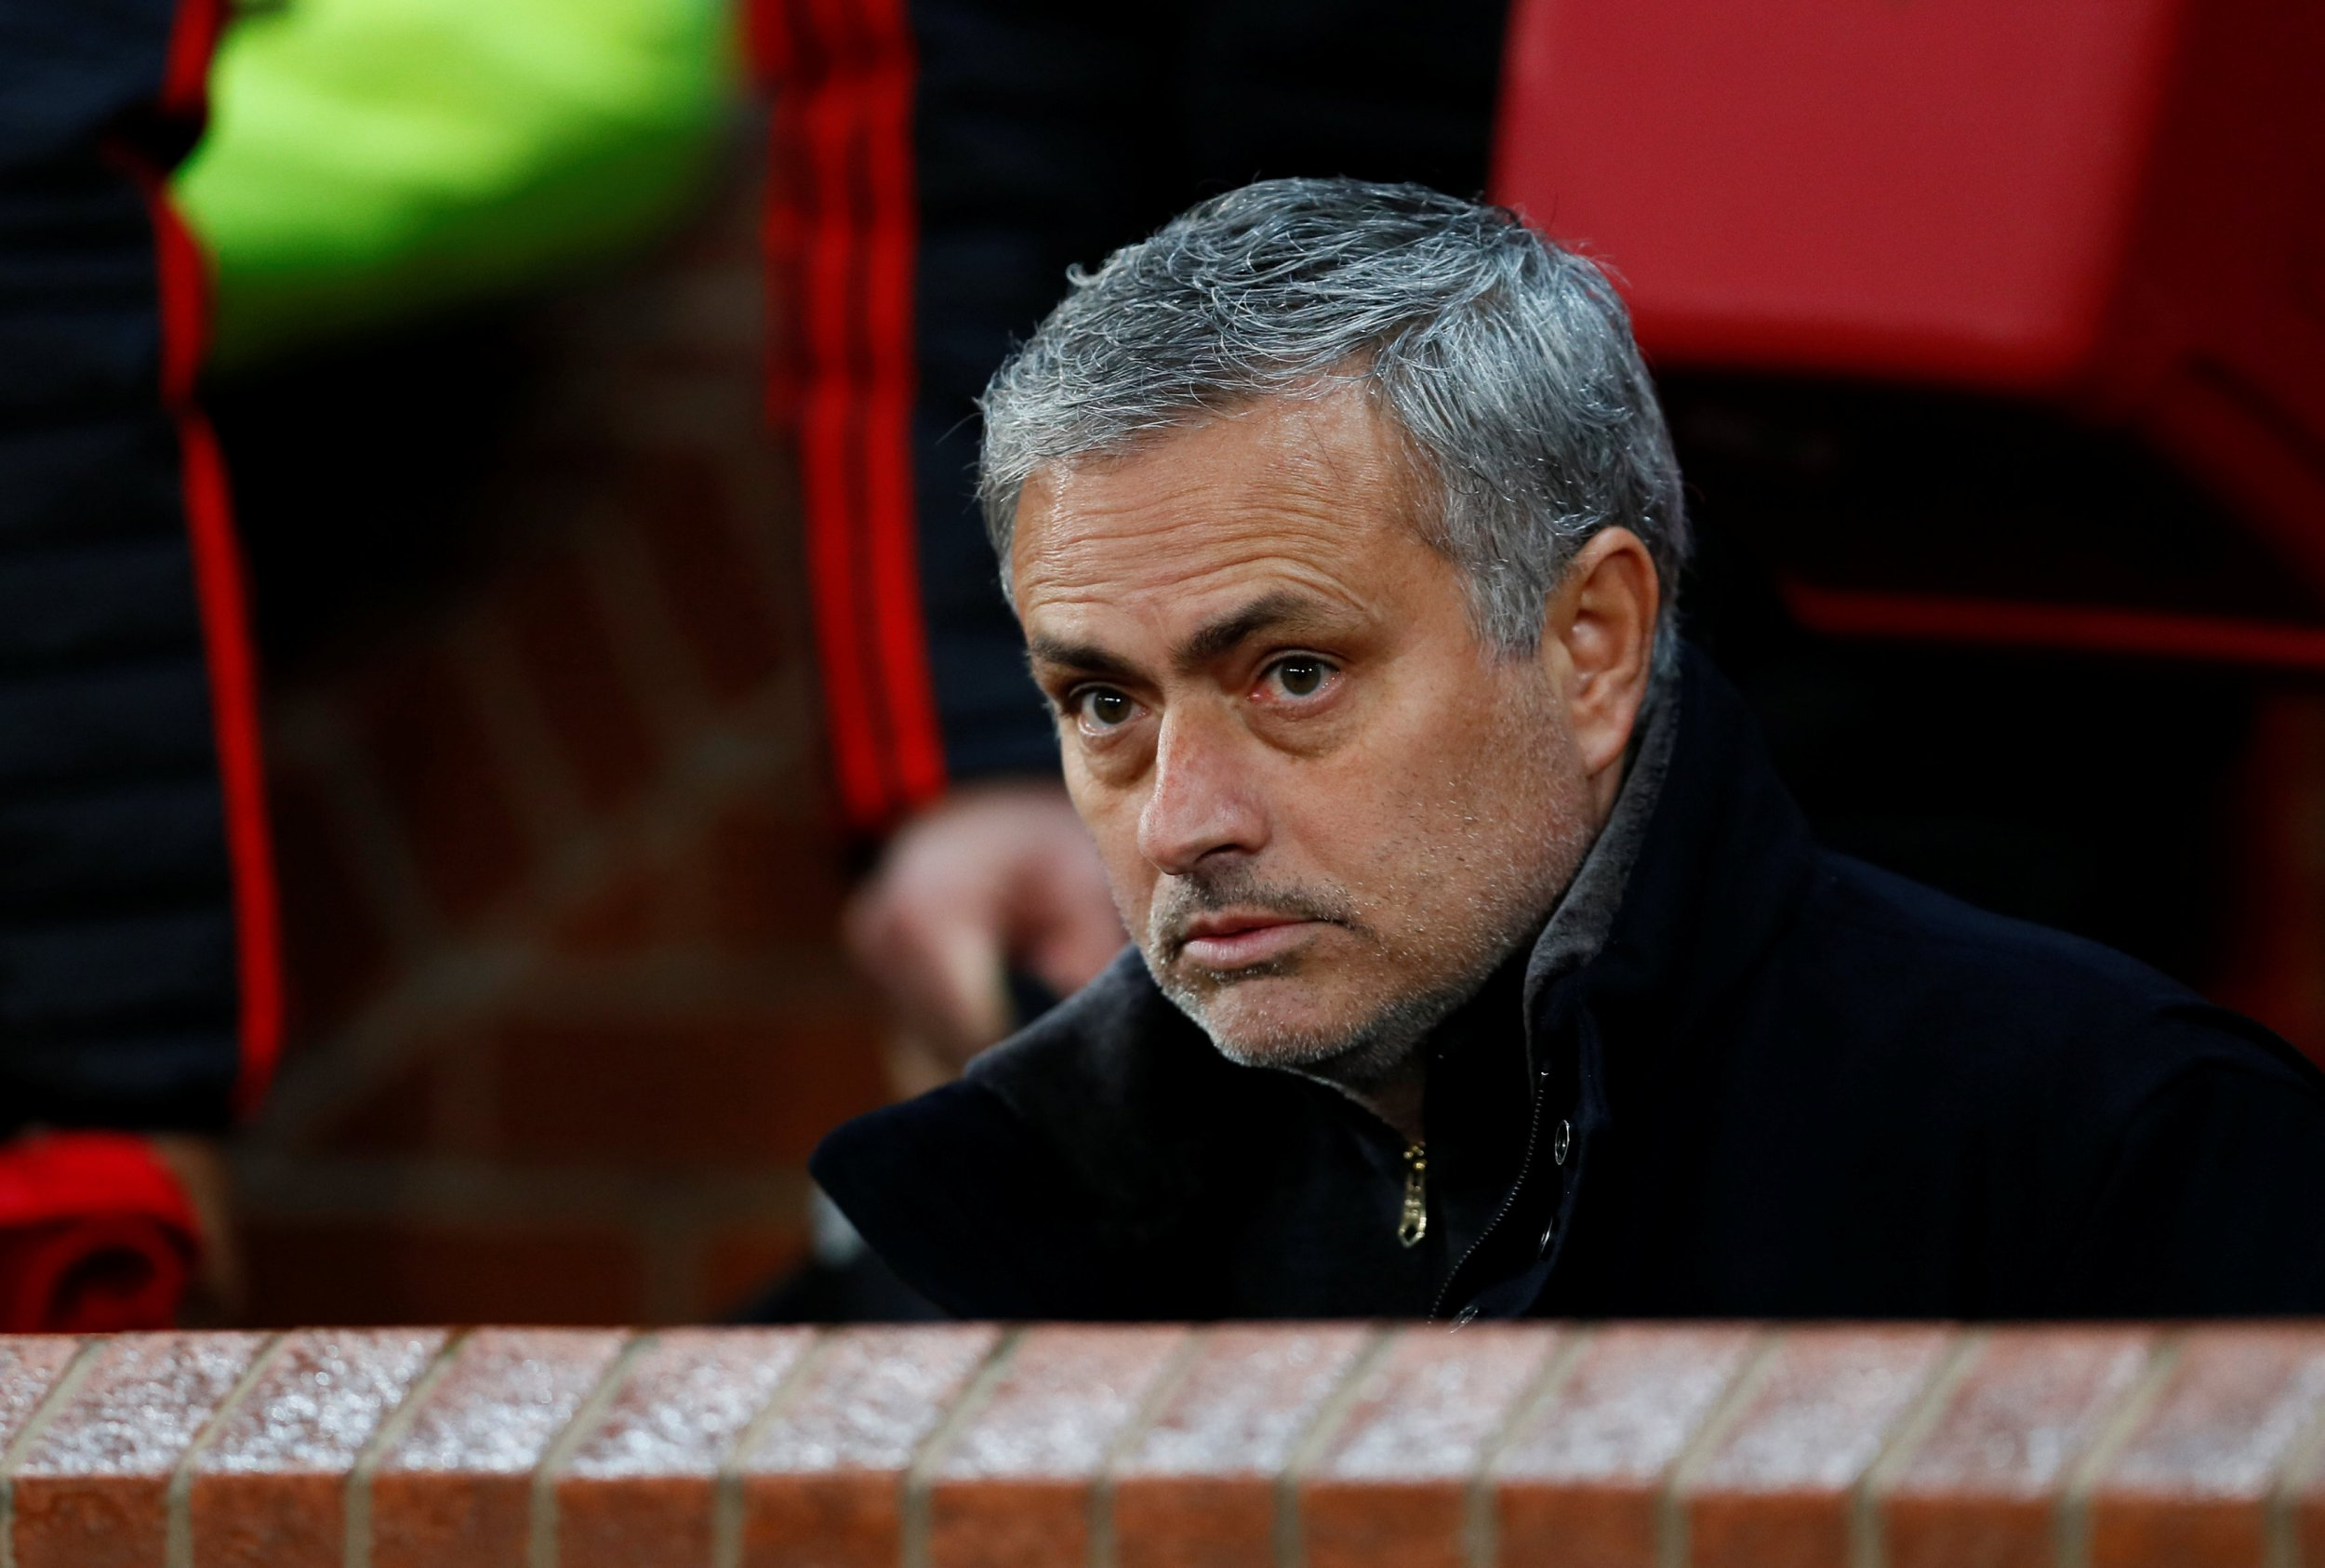 What Jose Mourinho told his Manchester United players who cried after losing to Sevilla